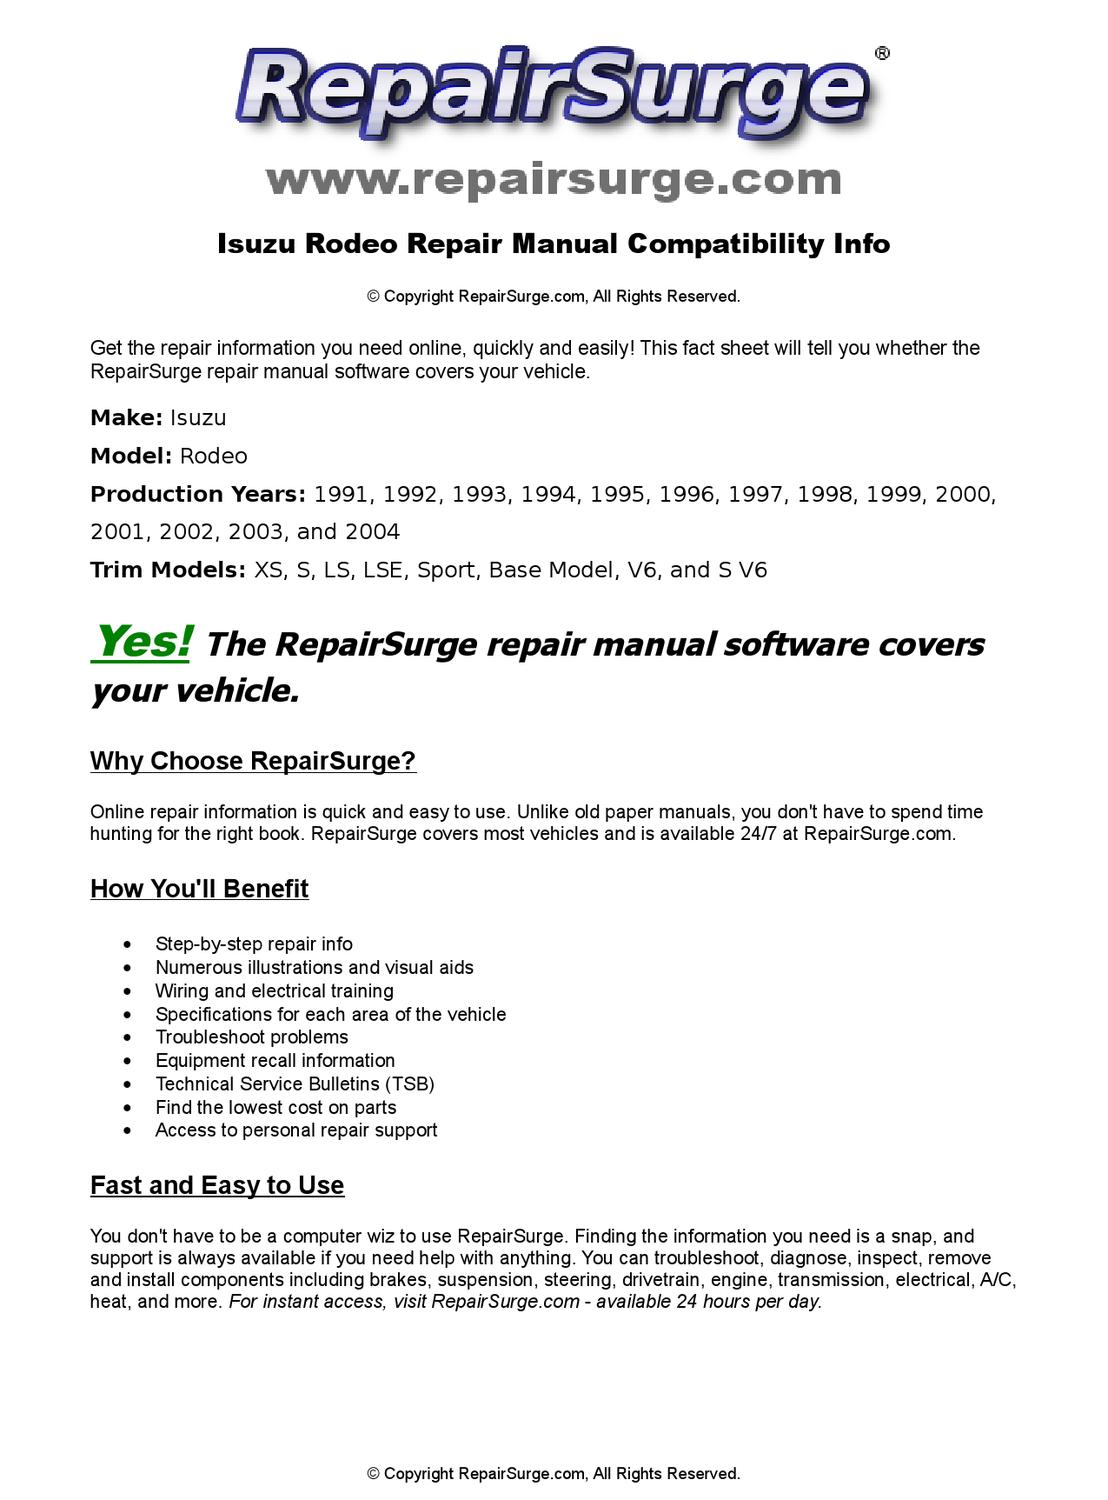 Isuzu Rodeo Online Repair Manual For 1991, 1992, 1993, 1994, 1995, 1996,  1997, 1998, 1999, 2000, 200 by RepairSurge - issuu